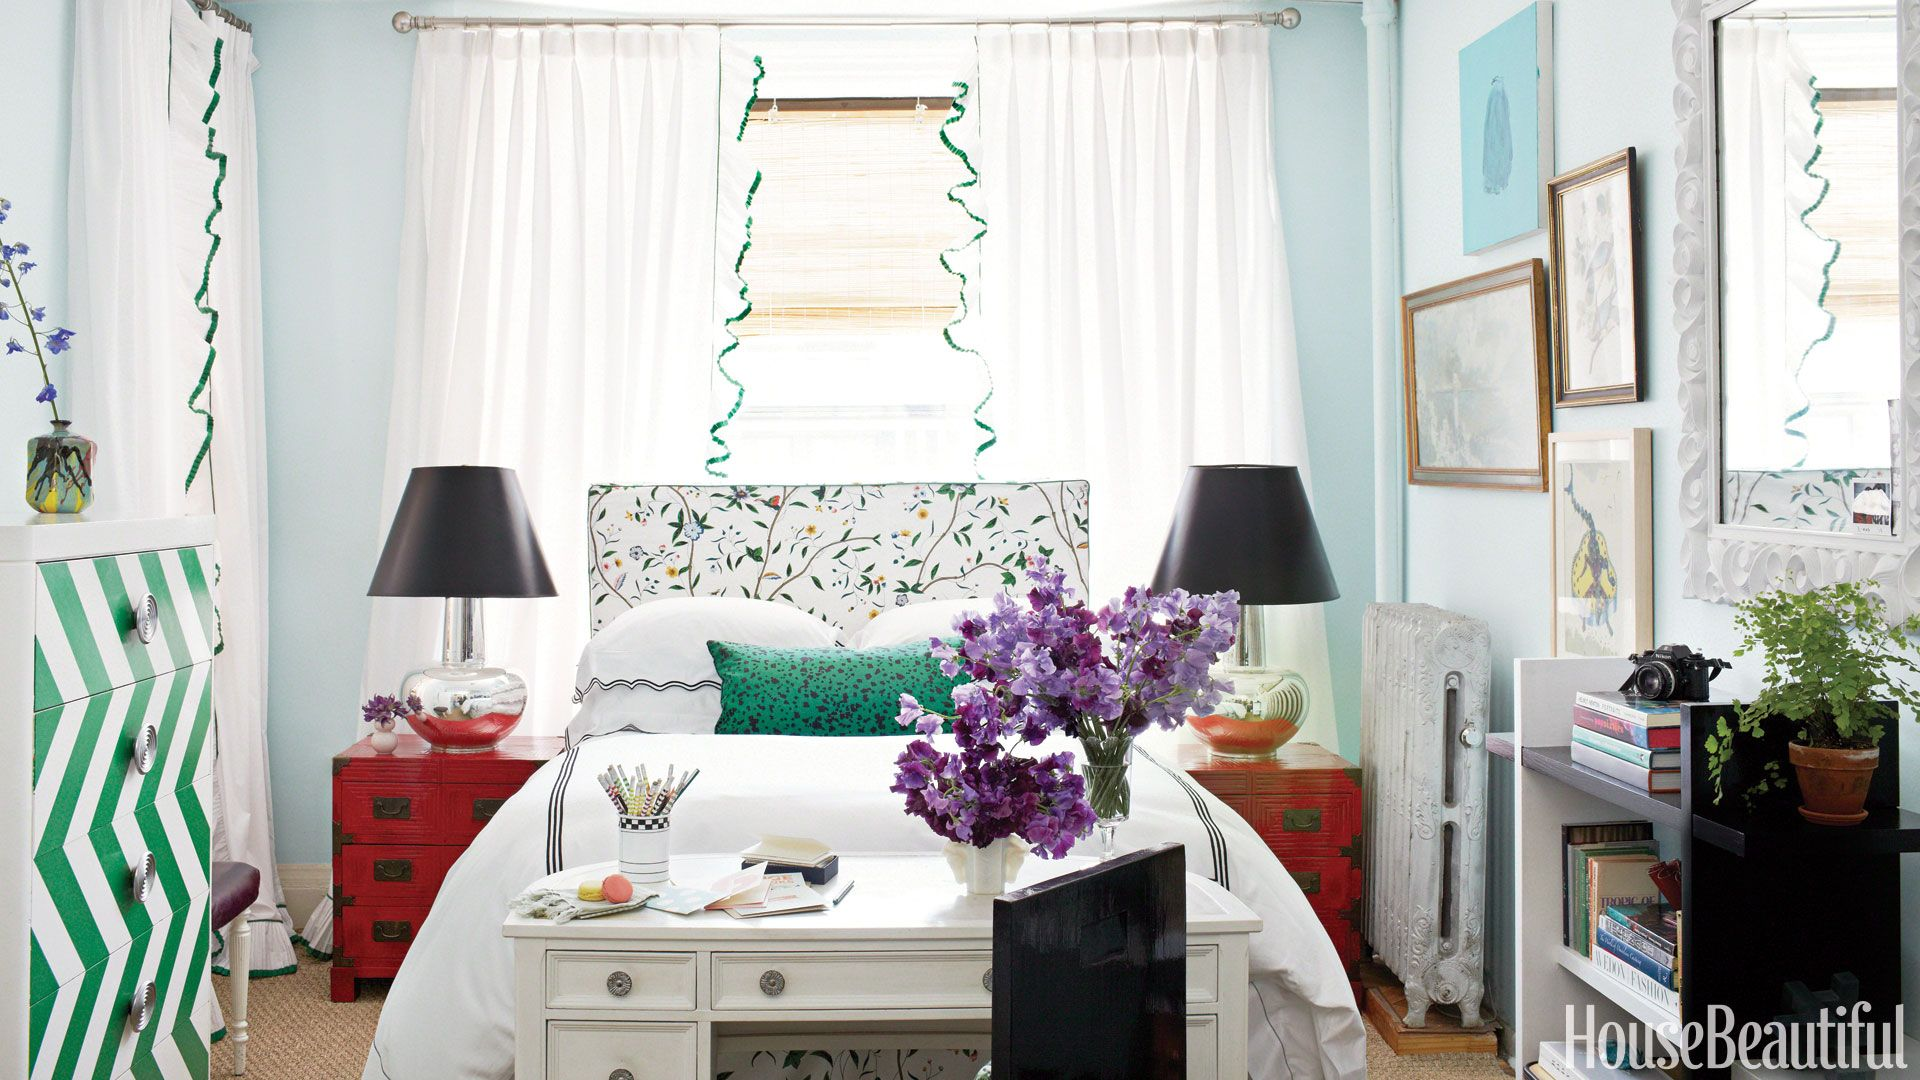 10 Tips on Small Bedroom Interior Design